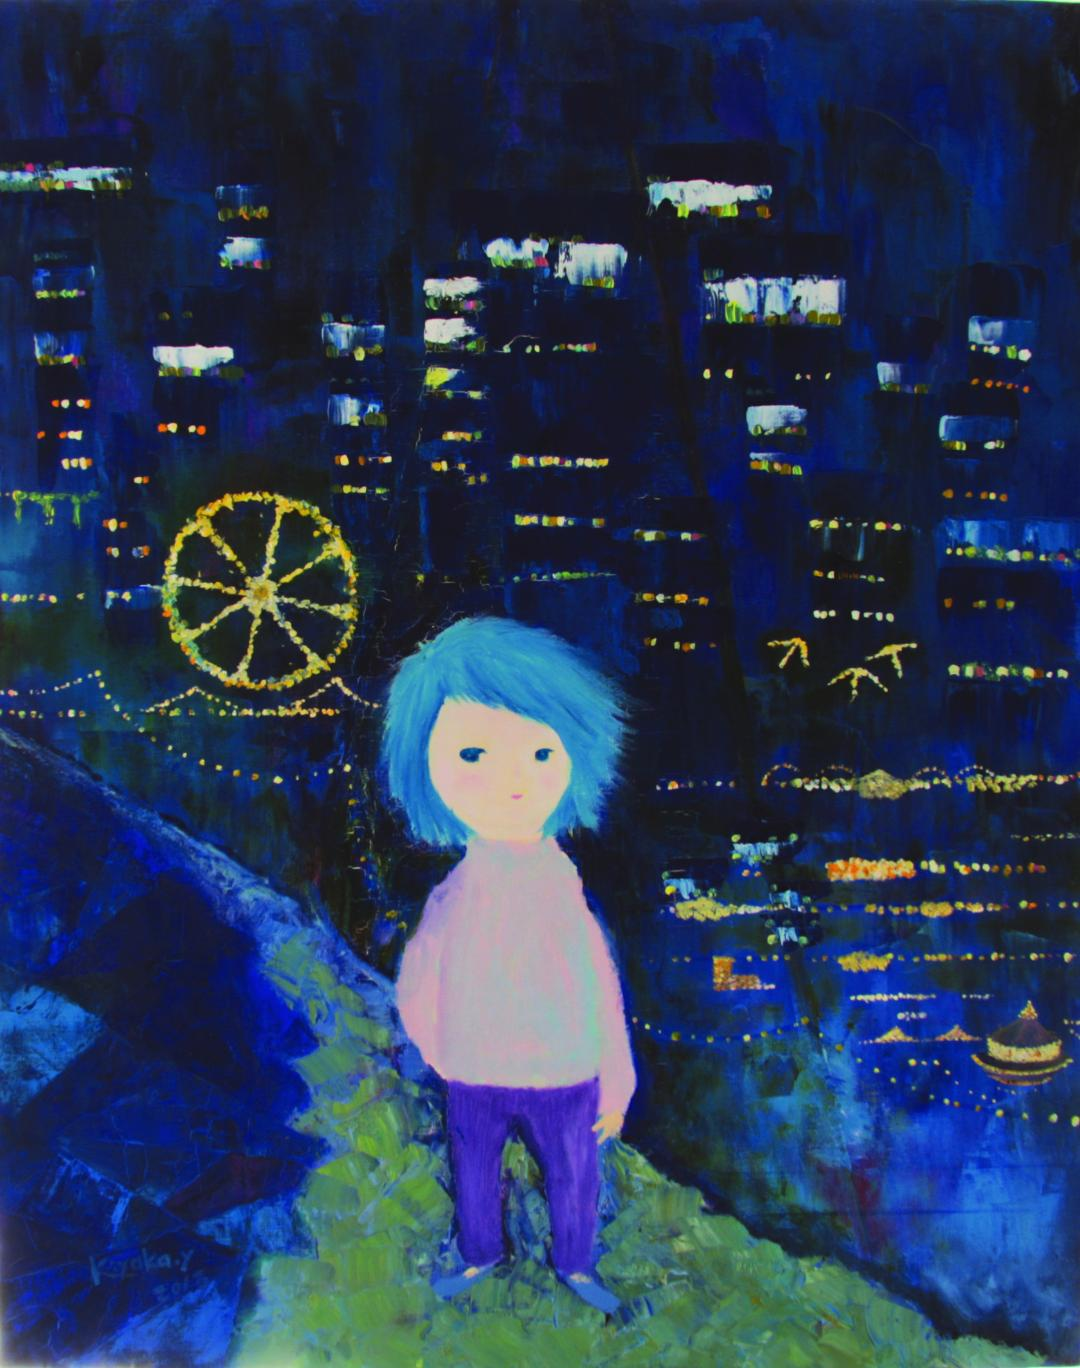 Abstract painting with a child-like figure in the center walking. Green and blue foreground, dark blue buildings and night sky with lights in the background.